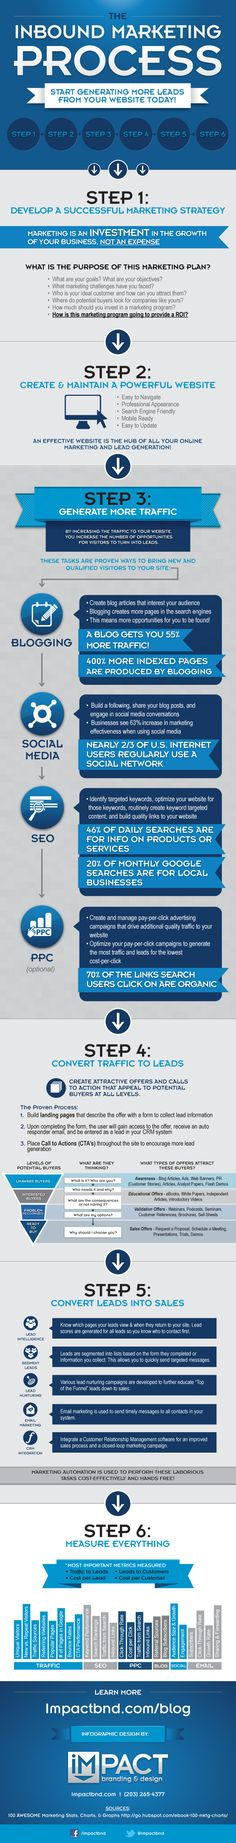 The-Inbound-Marketing-Process-infographic